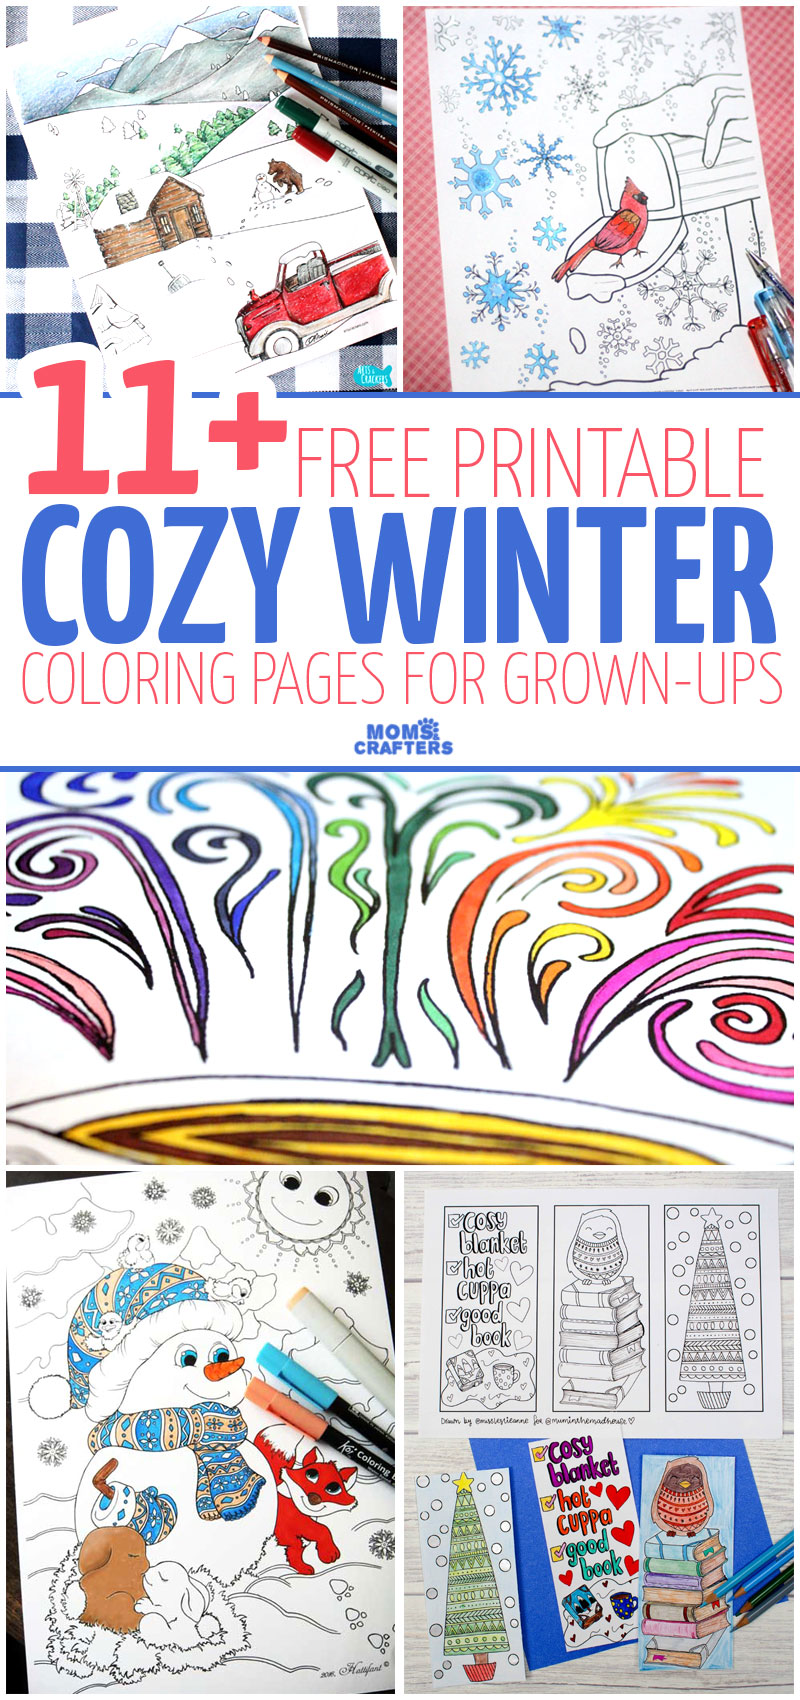 Free Printable Winter Coloring Pages for Adults Moms and Crafters